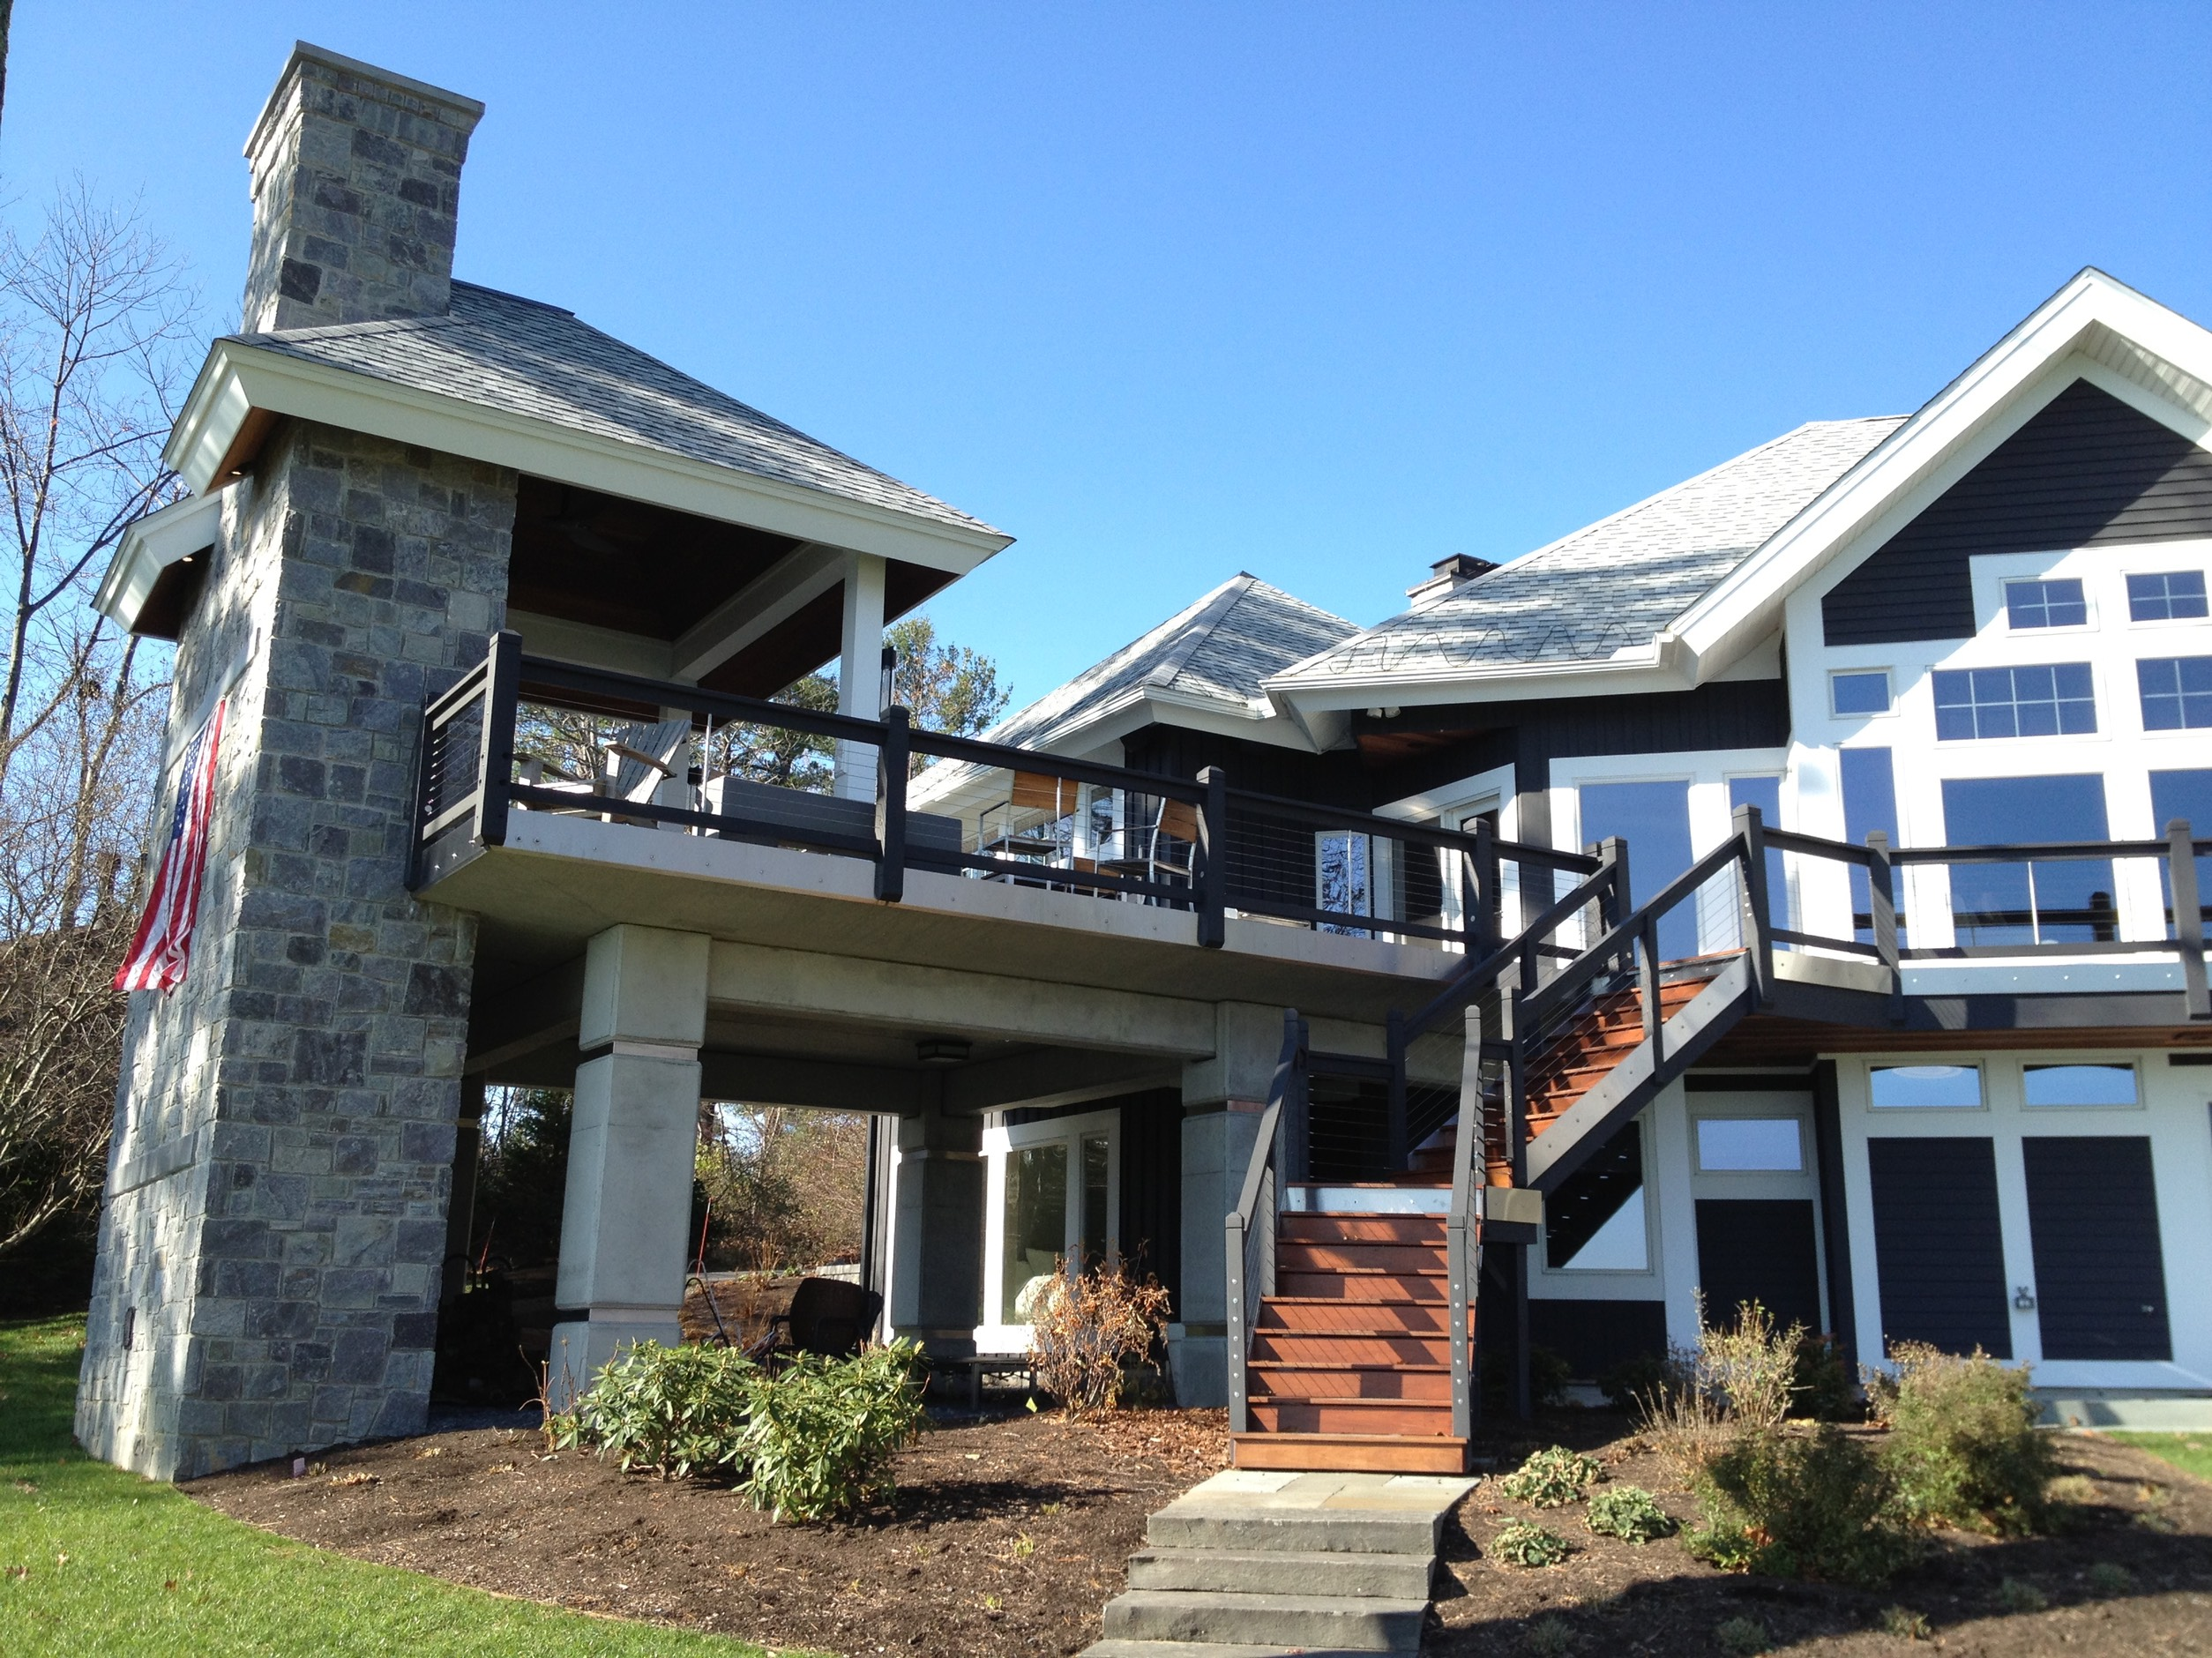 House designer builder weebly - House Designer Builder Details Semenza Homes A Division Of Semenza Contracting Inc By